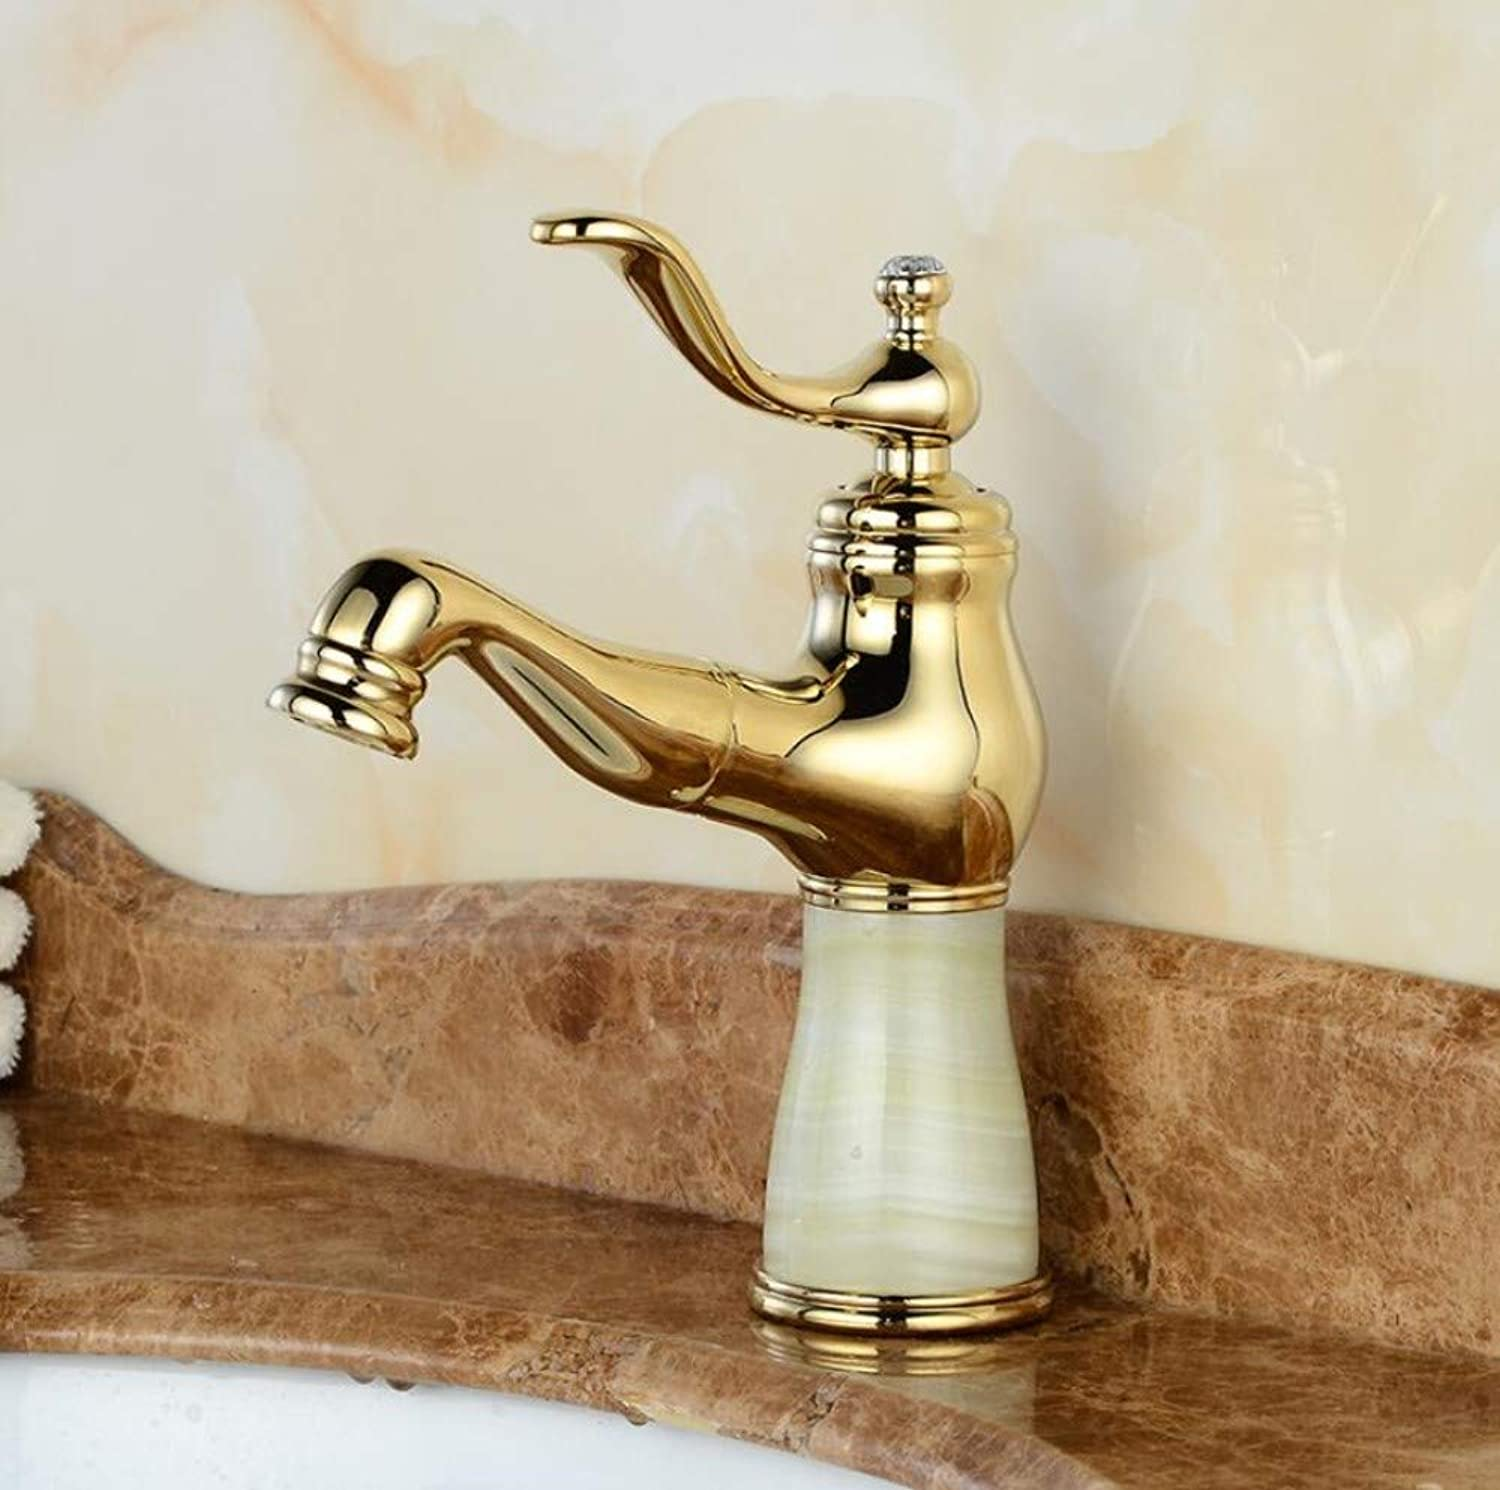 Modern Swivel Spout Fittings Waterfall Faucetclassic Kitchen and Sanitary Copper Hardware Faucet Lifting Single-Connection Hybrid Faucet